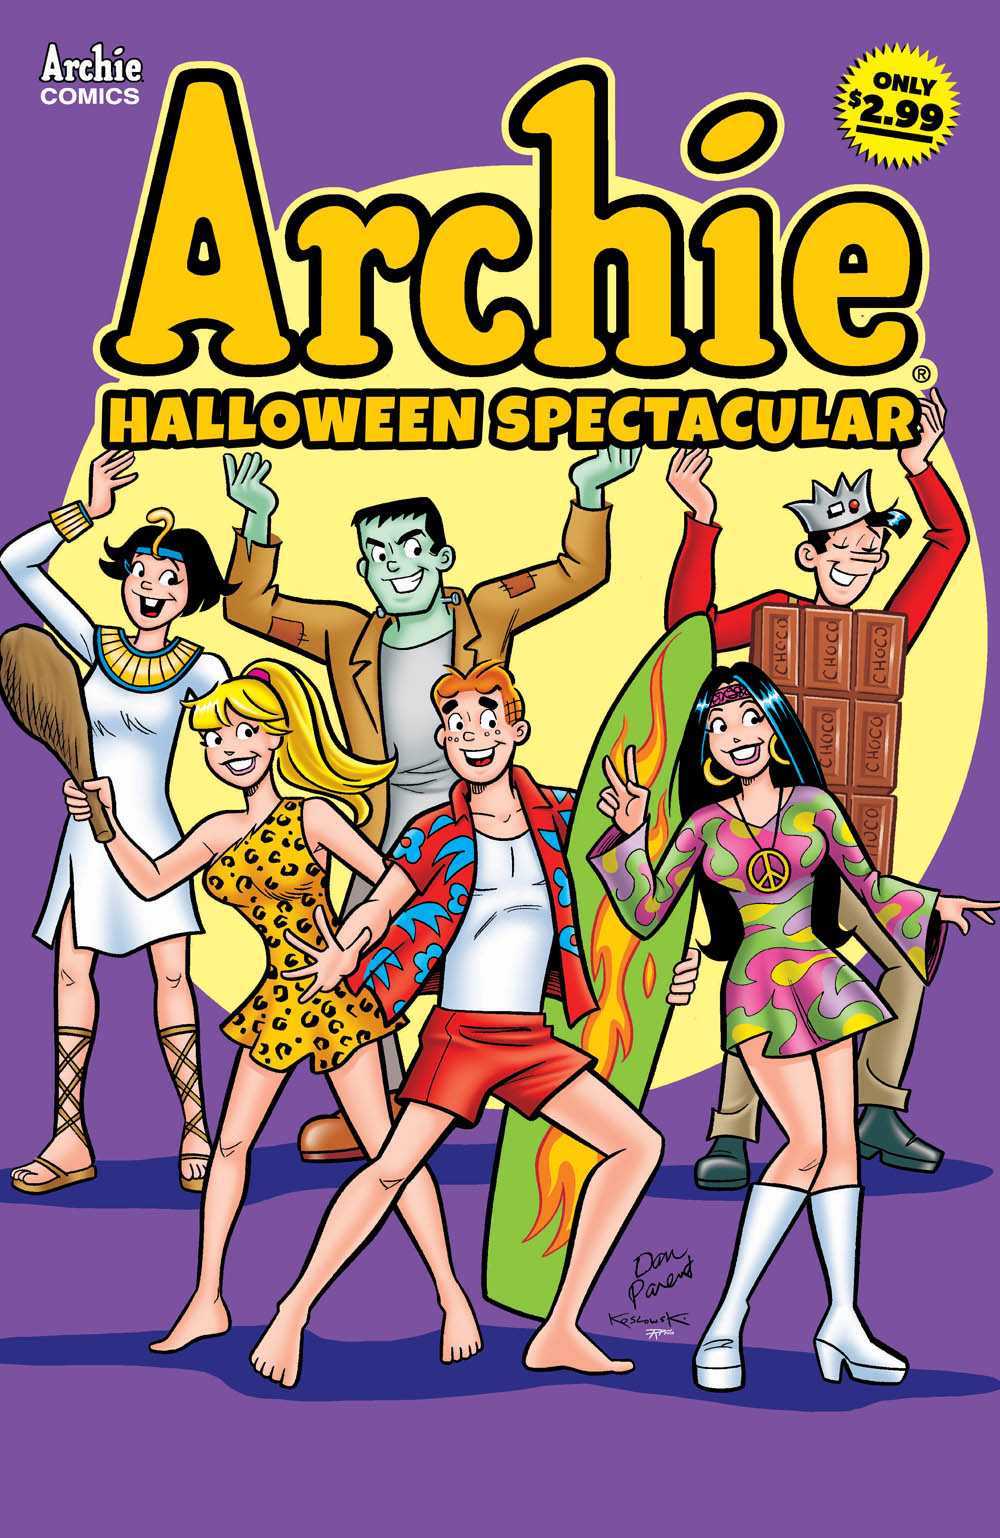 Get a sneak peek at the Archie Comics solicitations for